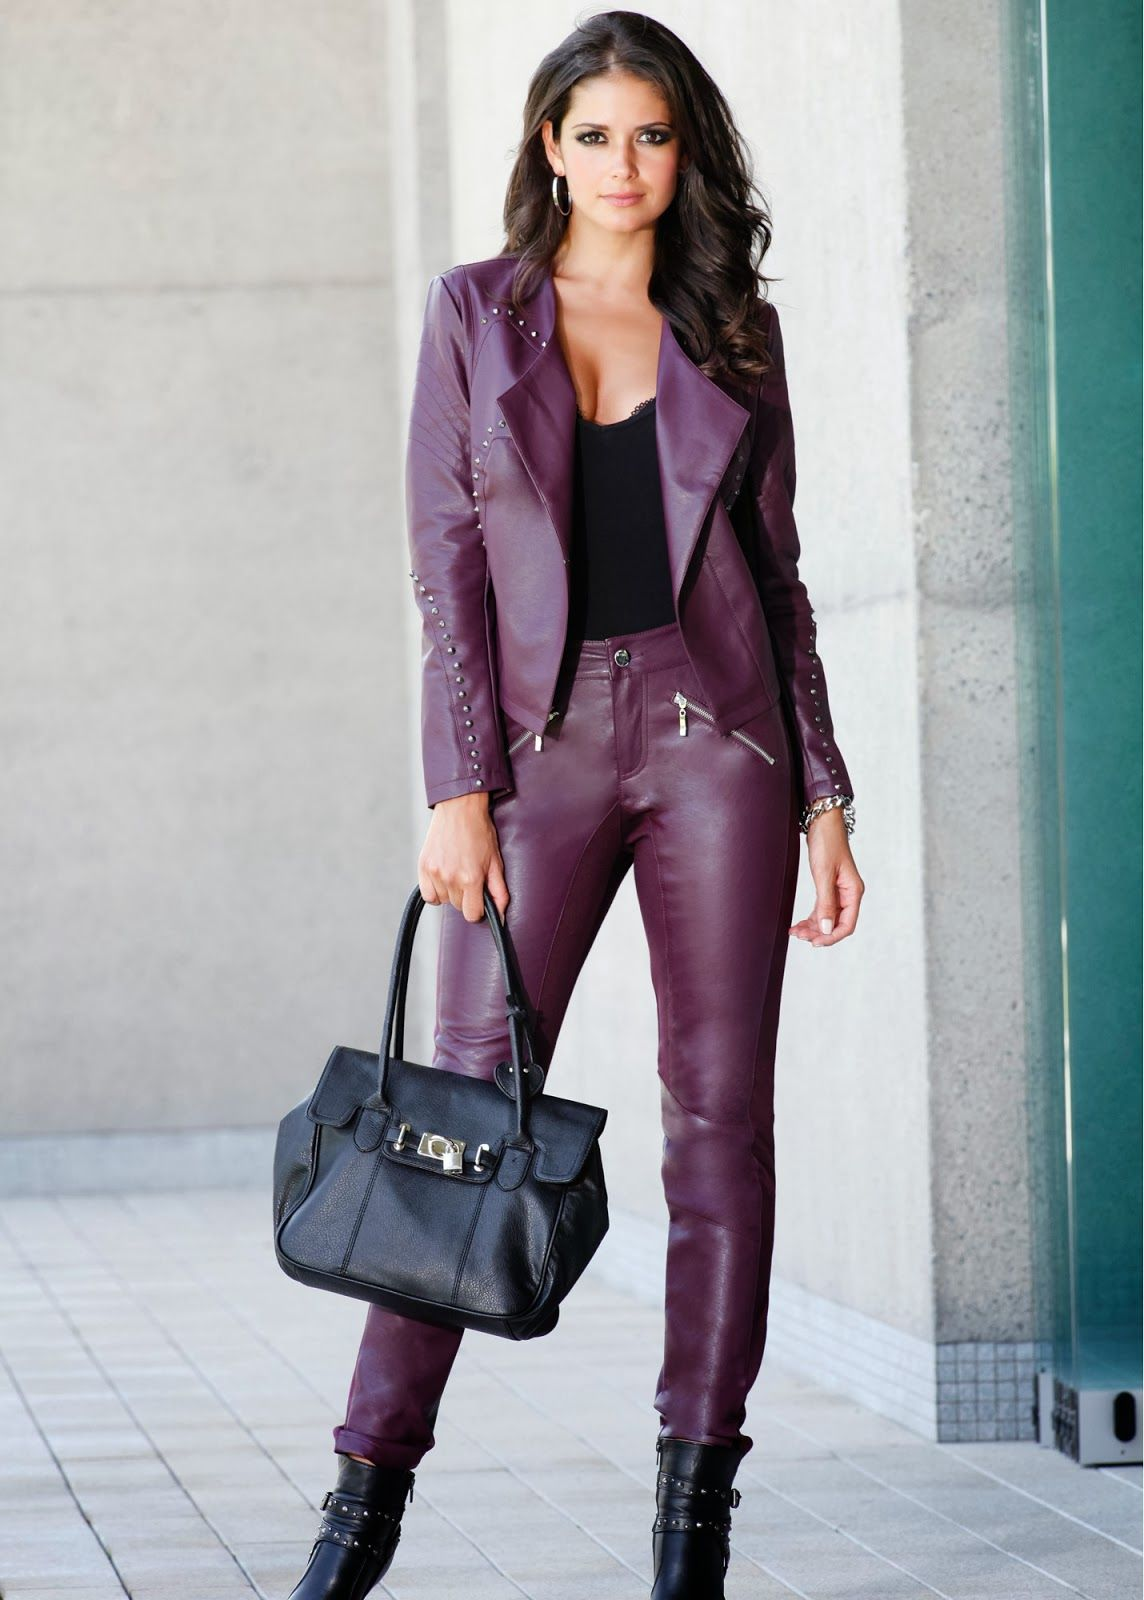 Leather clothing for women Carla Ossa | Leather Trousers / Leggins III | Pinterest | Leather ...